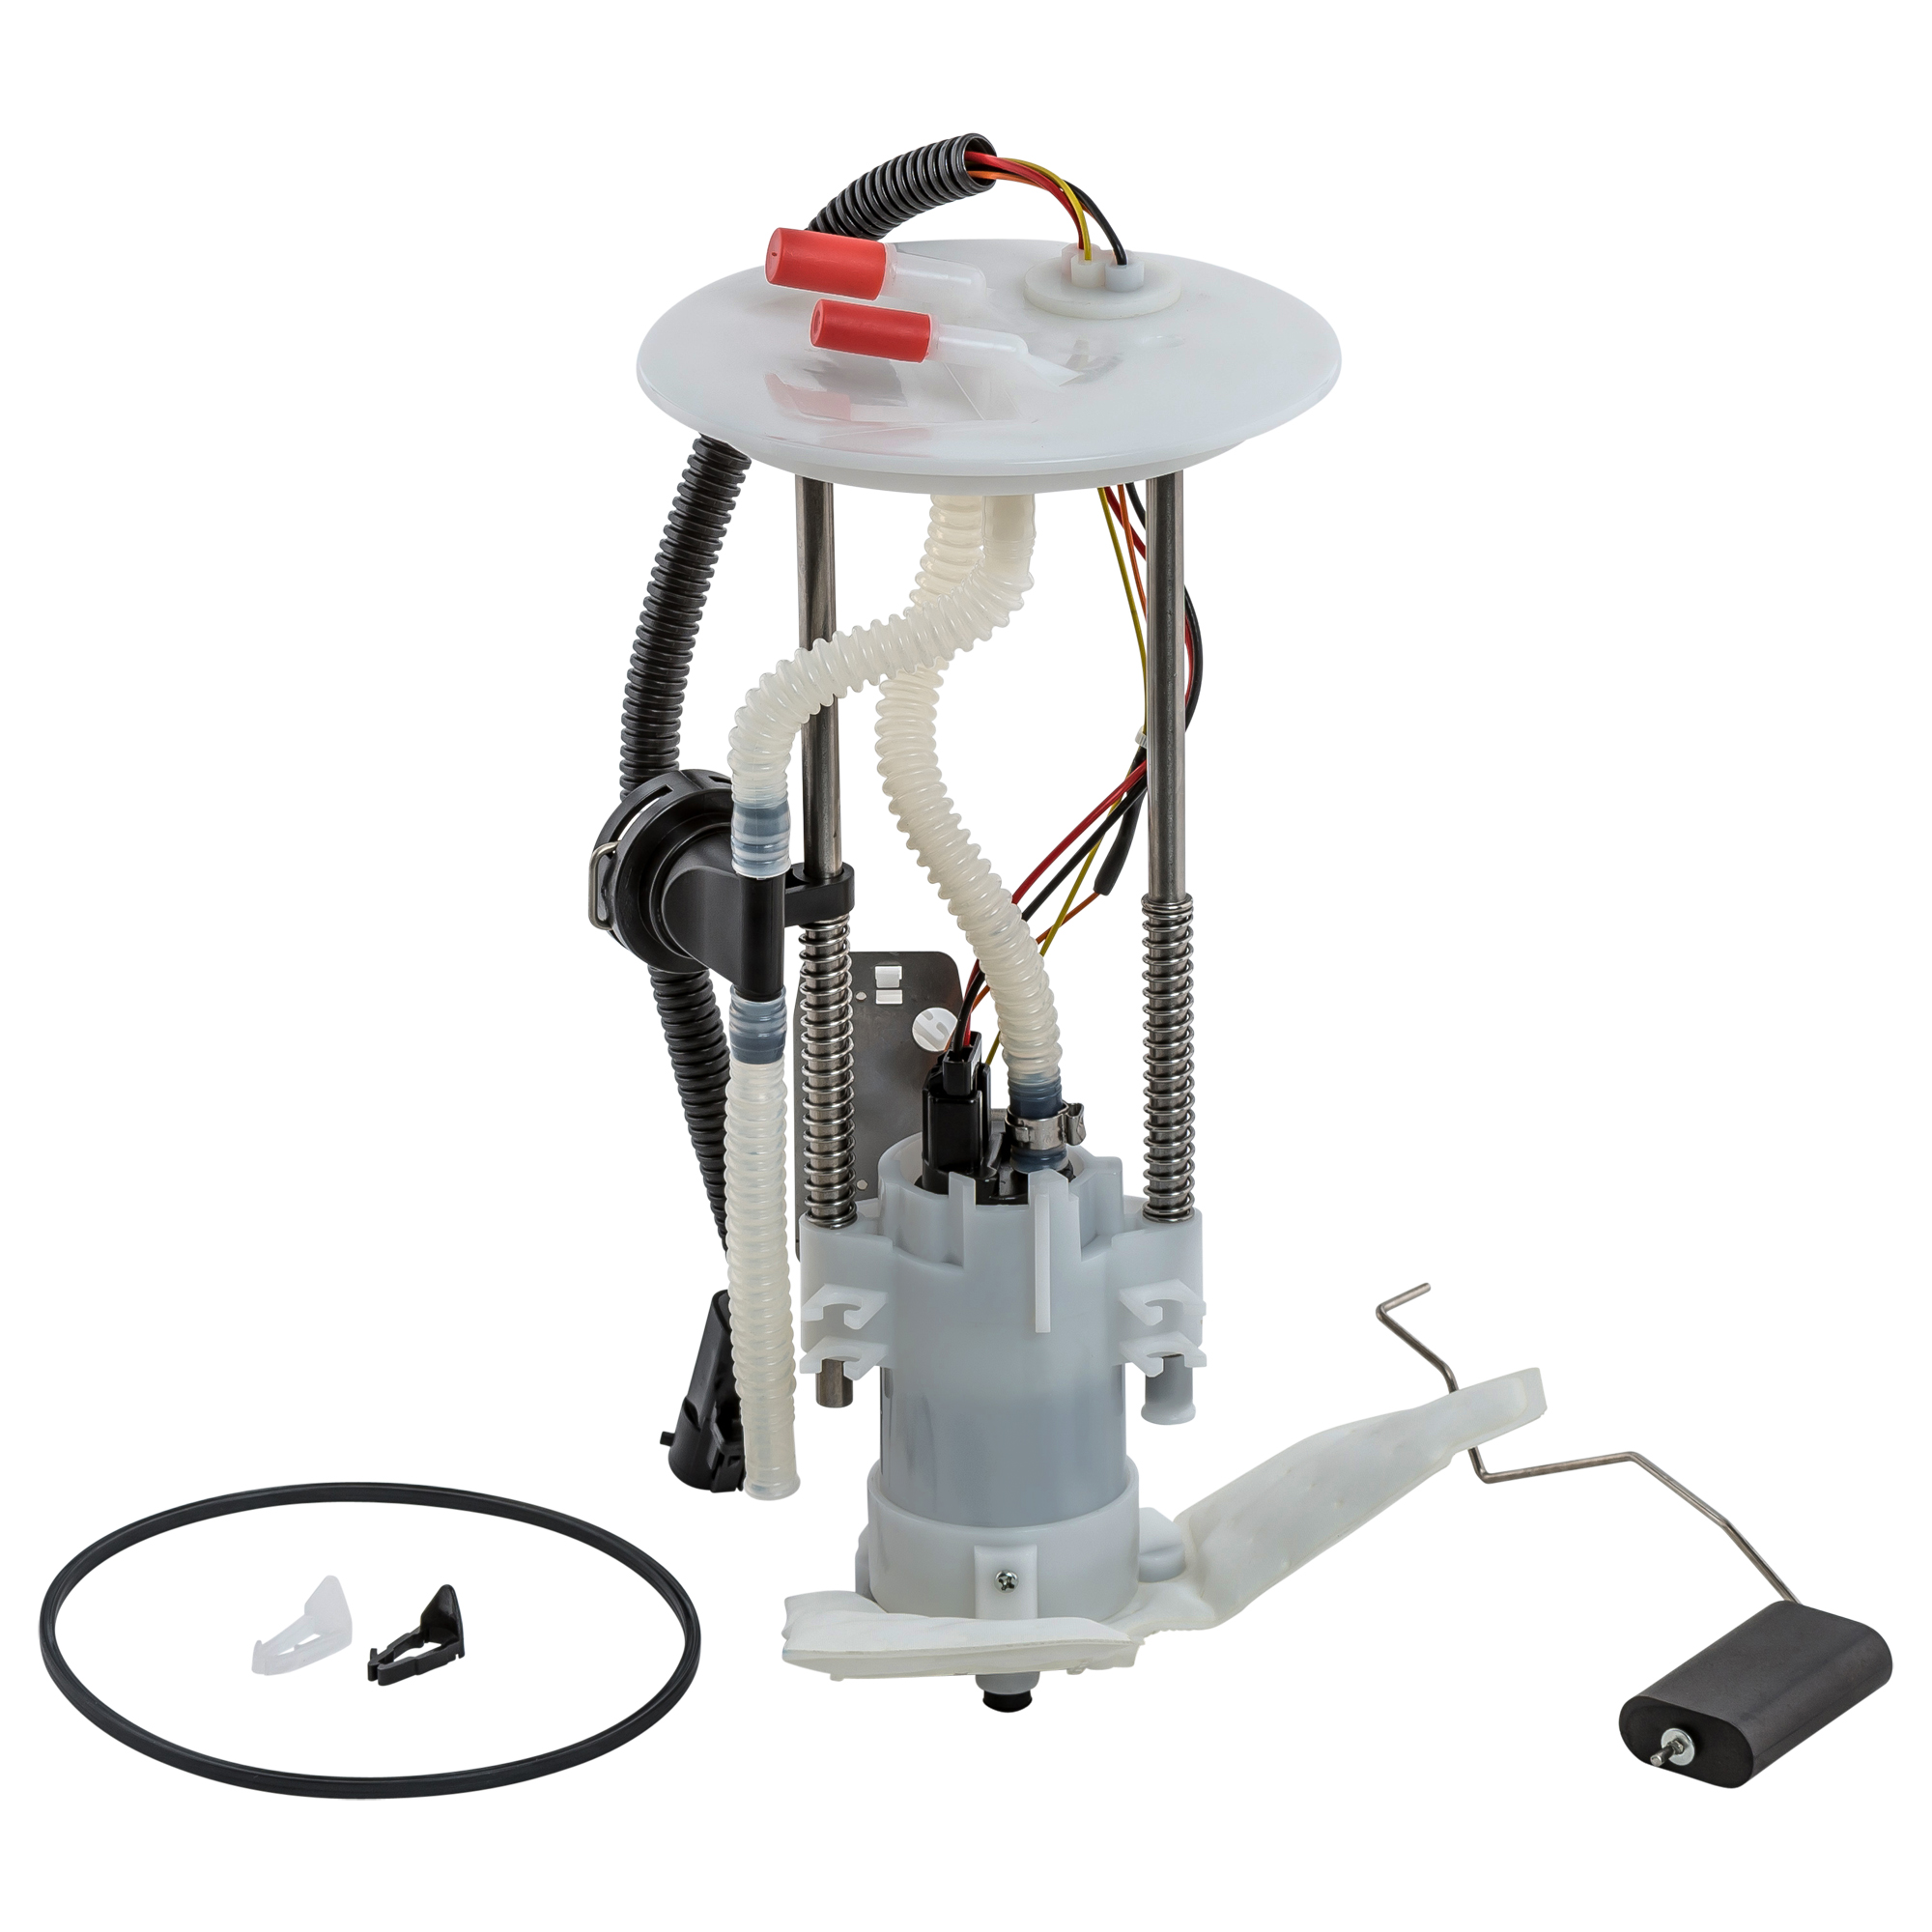 Fuel Pump Module Assembly Fits Ford Expedition V8-4.6L 2003 2004 for SP2361M